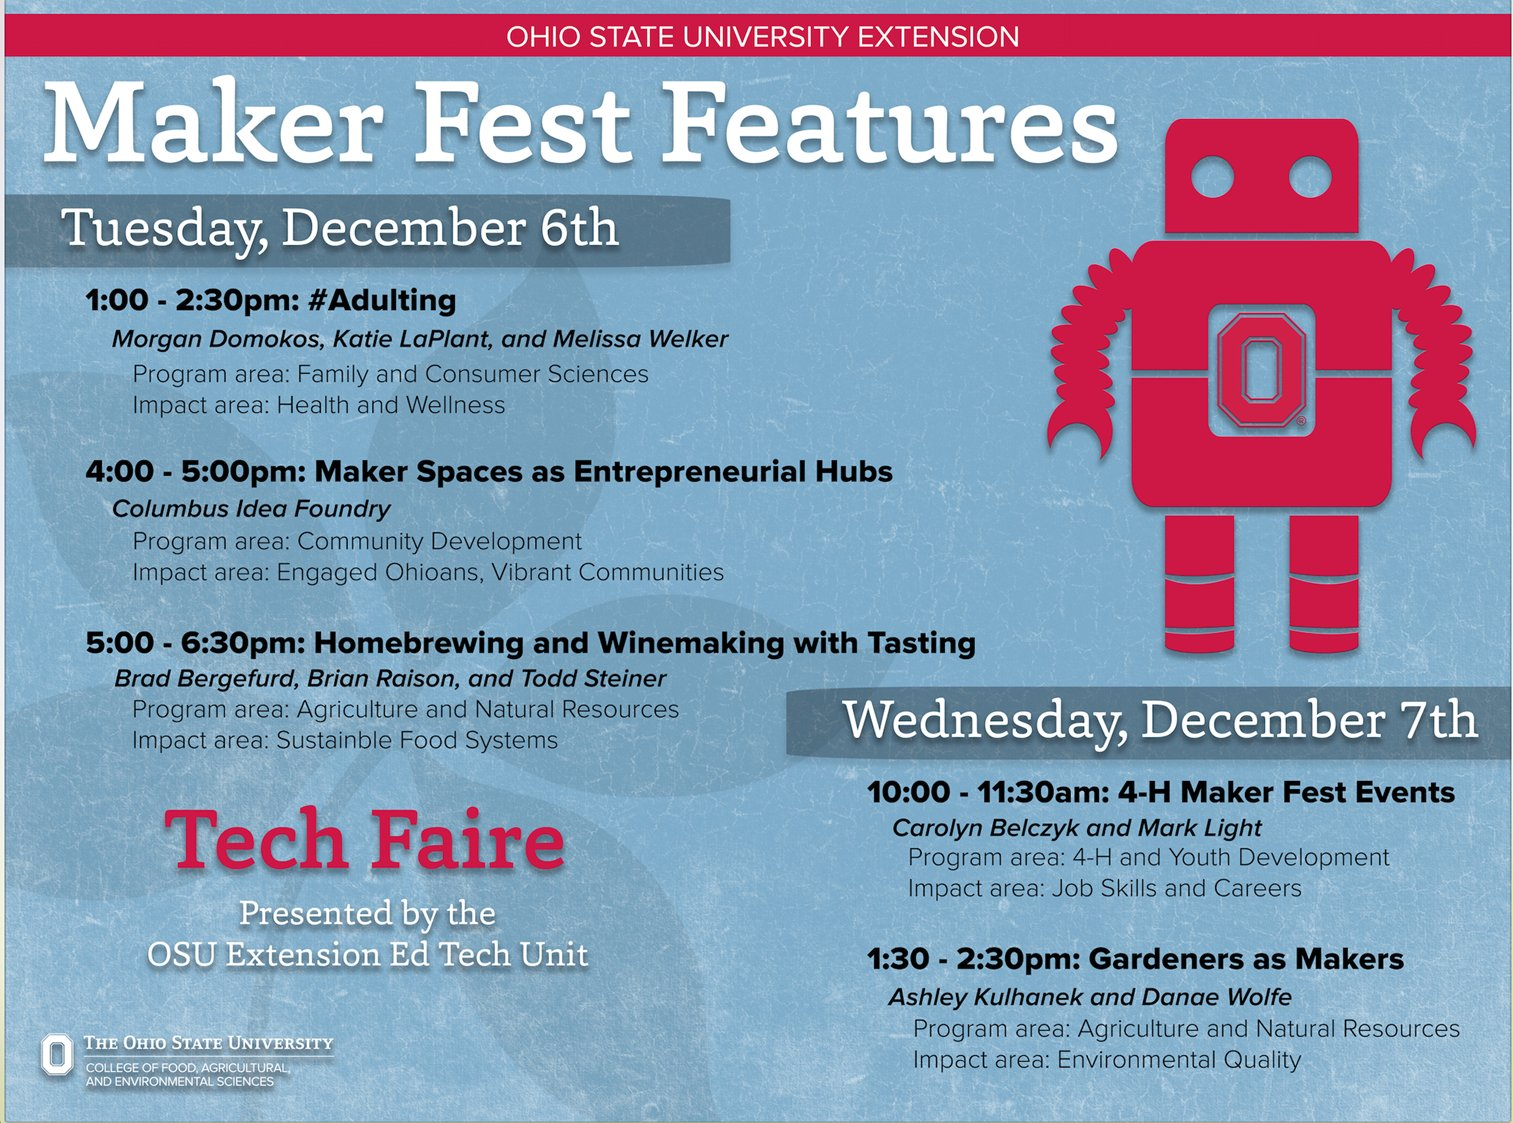 Good morning #osue2016! Stop by the Tech Faire from 11am - 6:30pm to hang with @DanaeMWolfe, @RaisonLocalFood, @ColumbusiF &@LandGrantBeer https://t.co/Yg0EHUHM1e